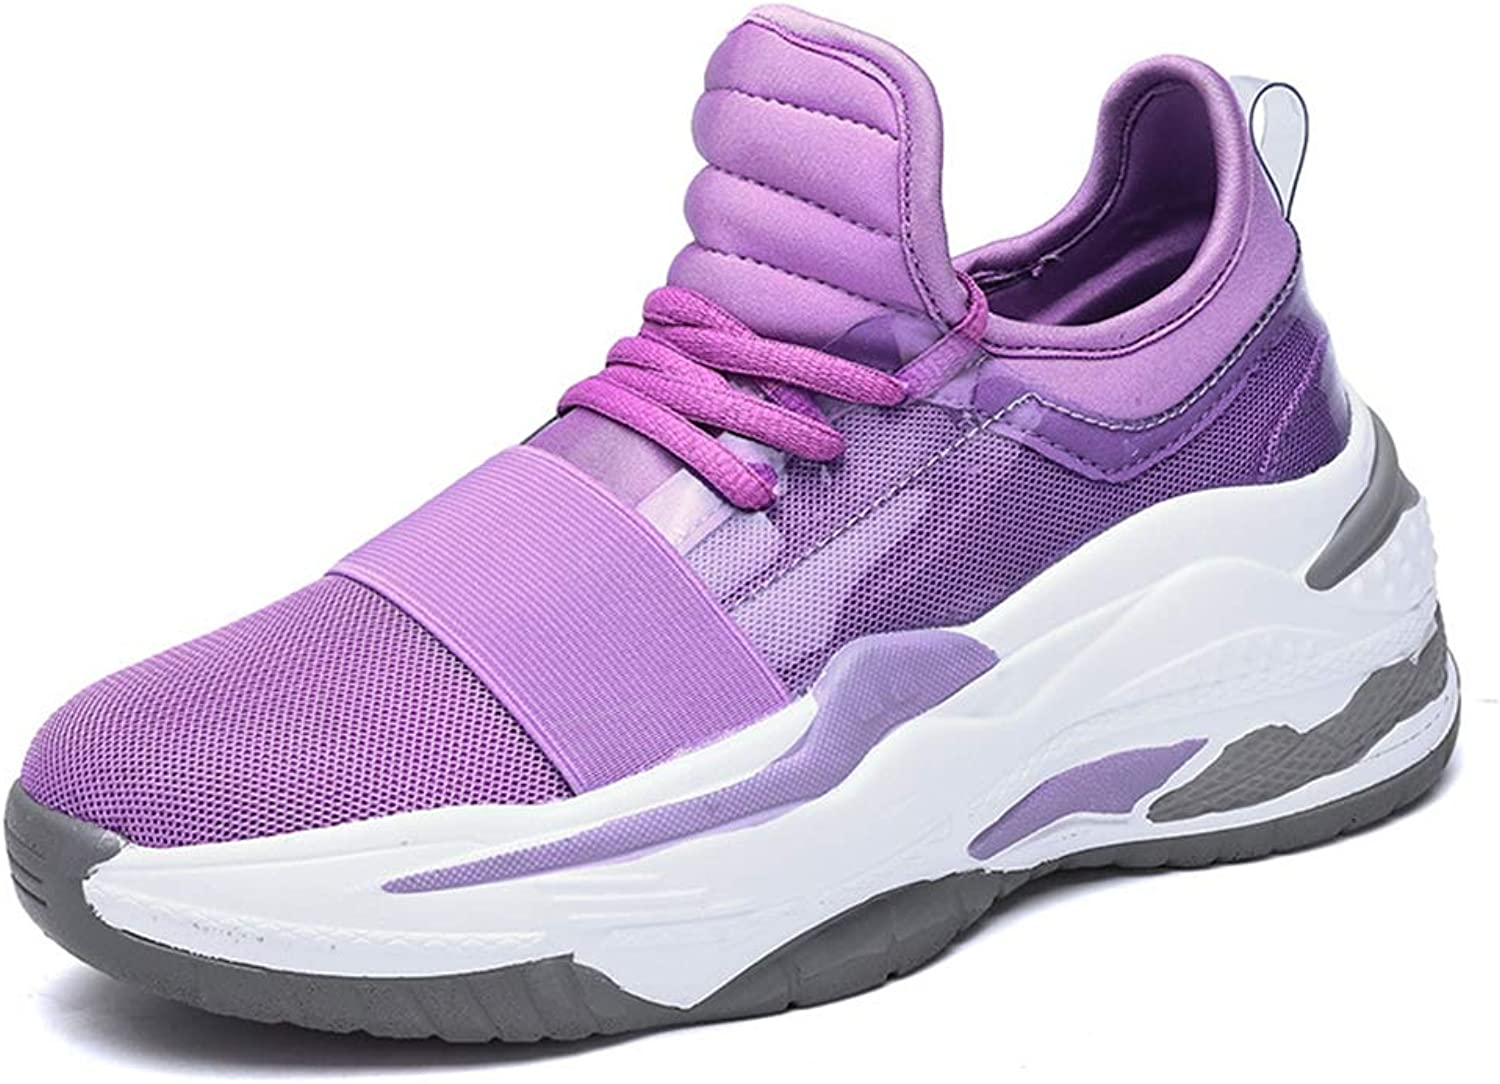 Women's Sneakers Low-Top Casual shoes 2019 New Breathable Mesh Platform shoes Travel shoes, Non-Slip Running shoes,B,38